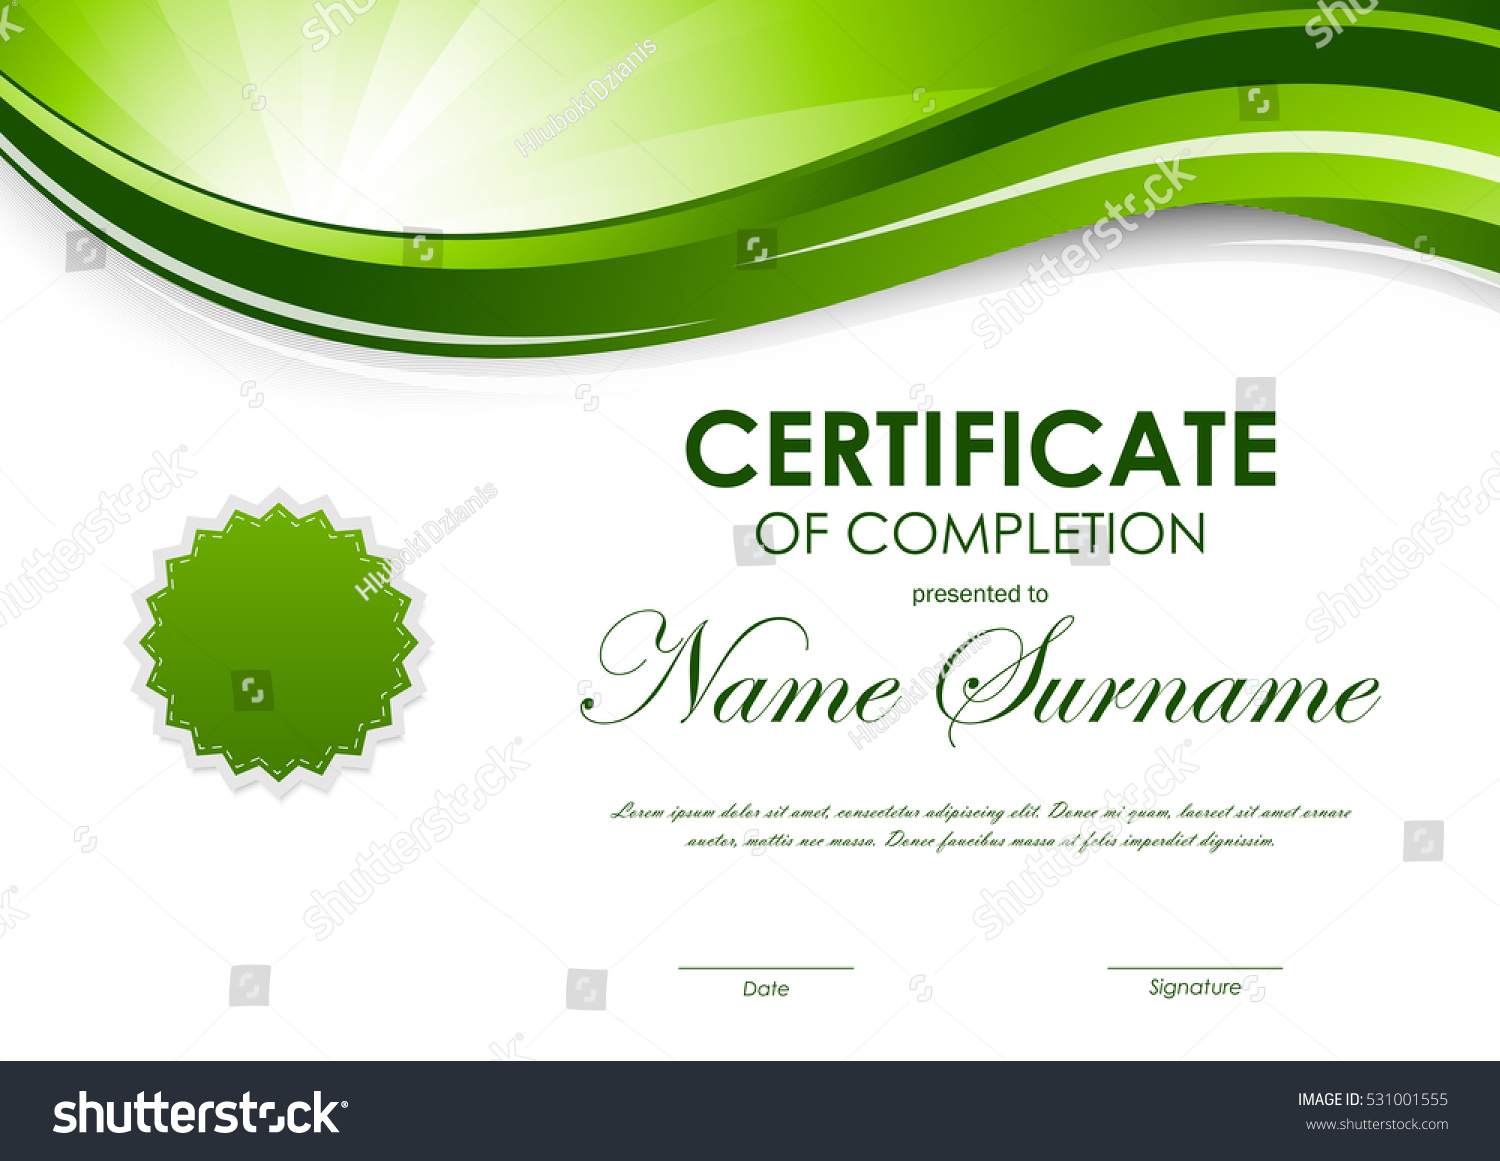 Certificate completion template green dynamic light certificate completion template green dynamic light 531001555 shutterstock yelopaper Gallery